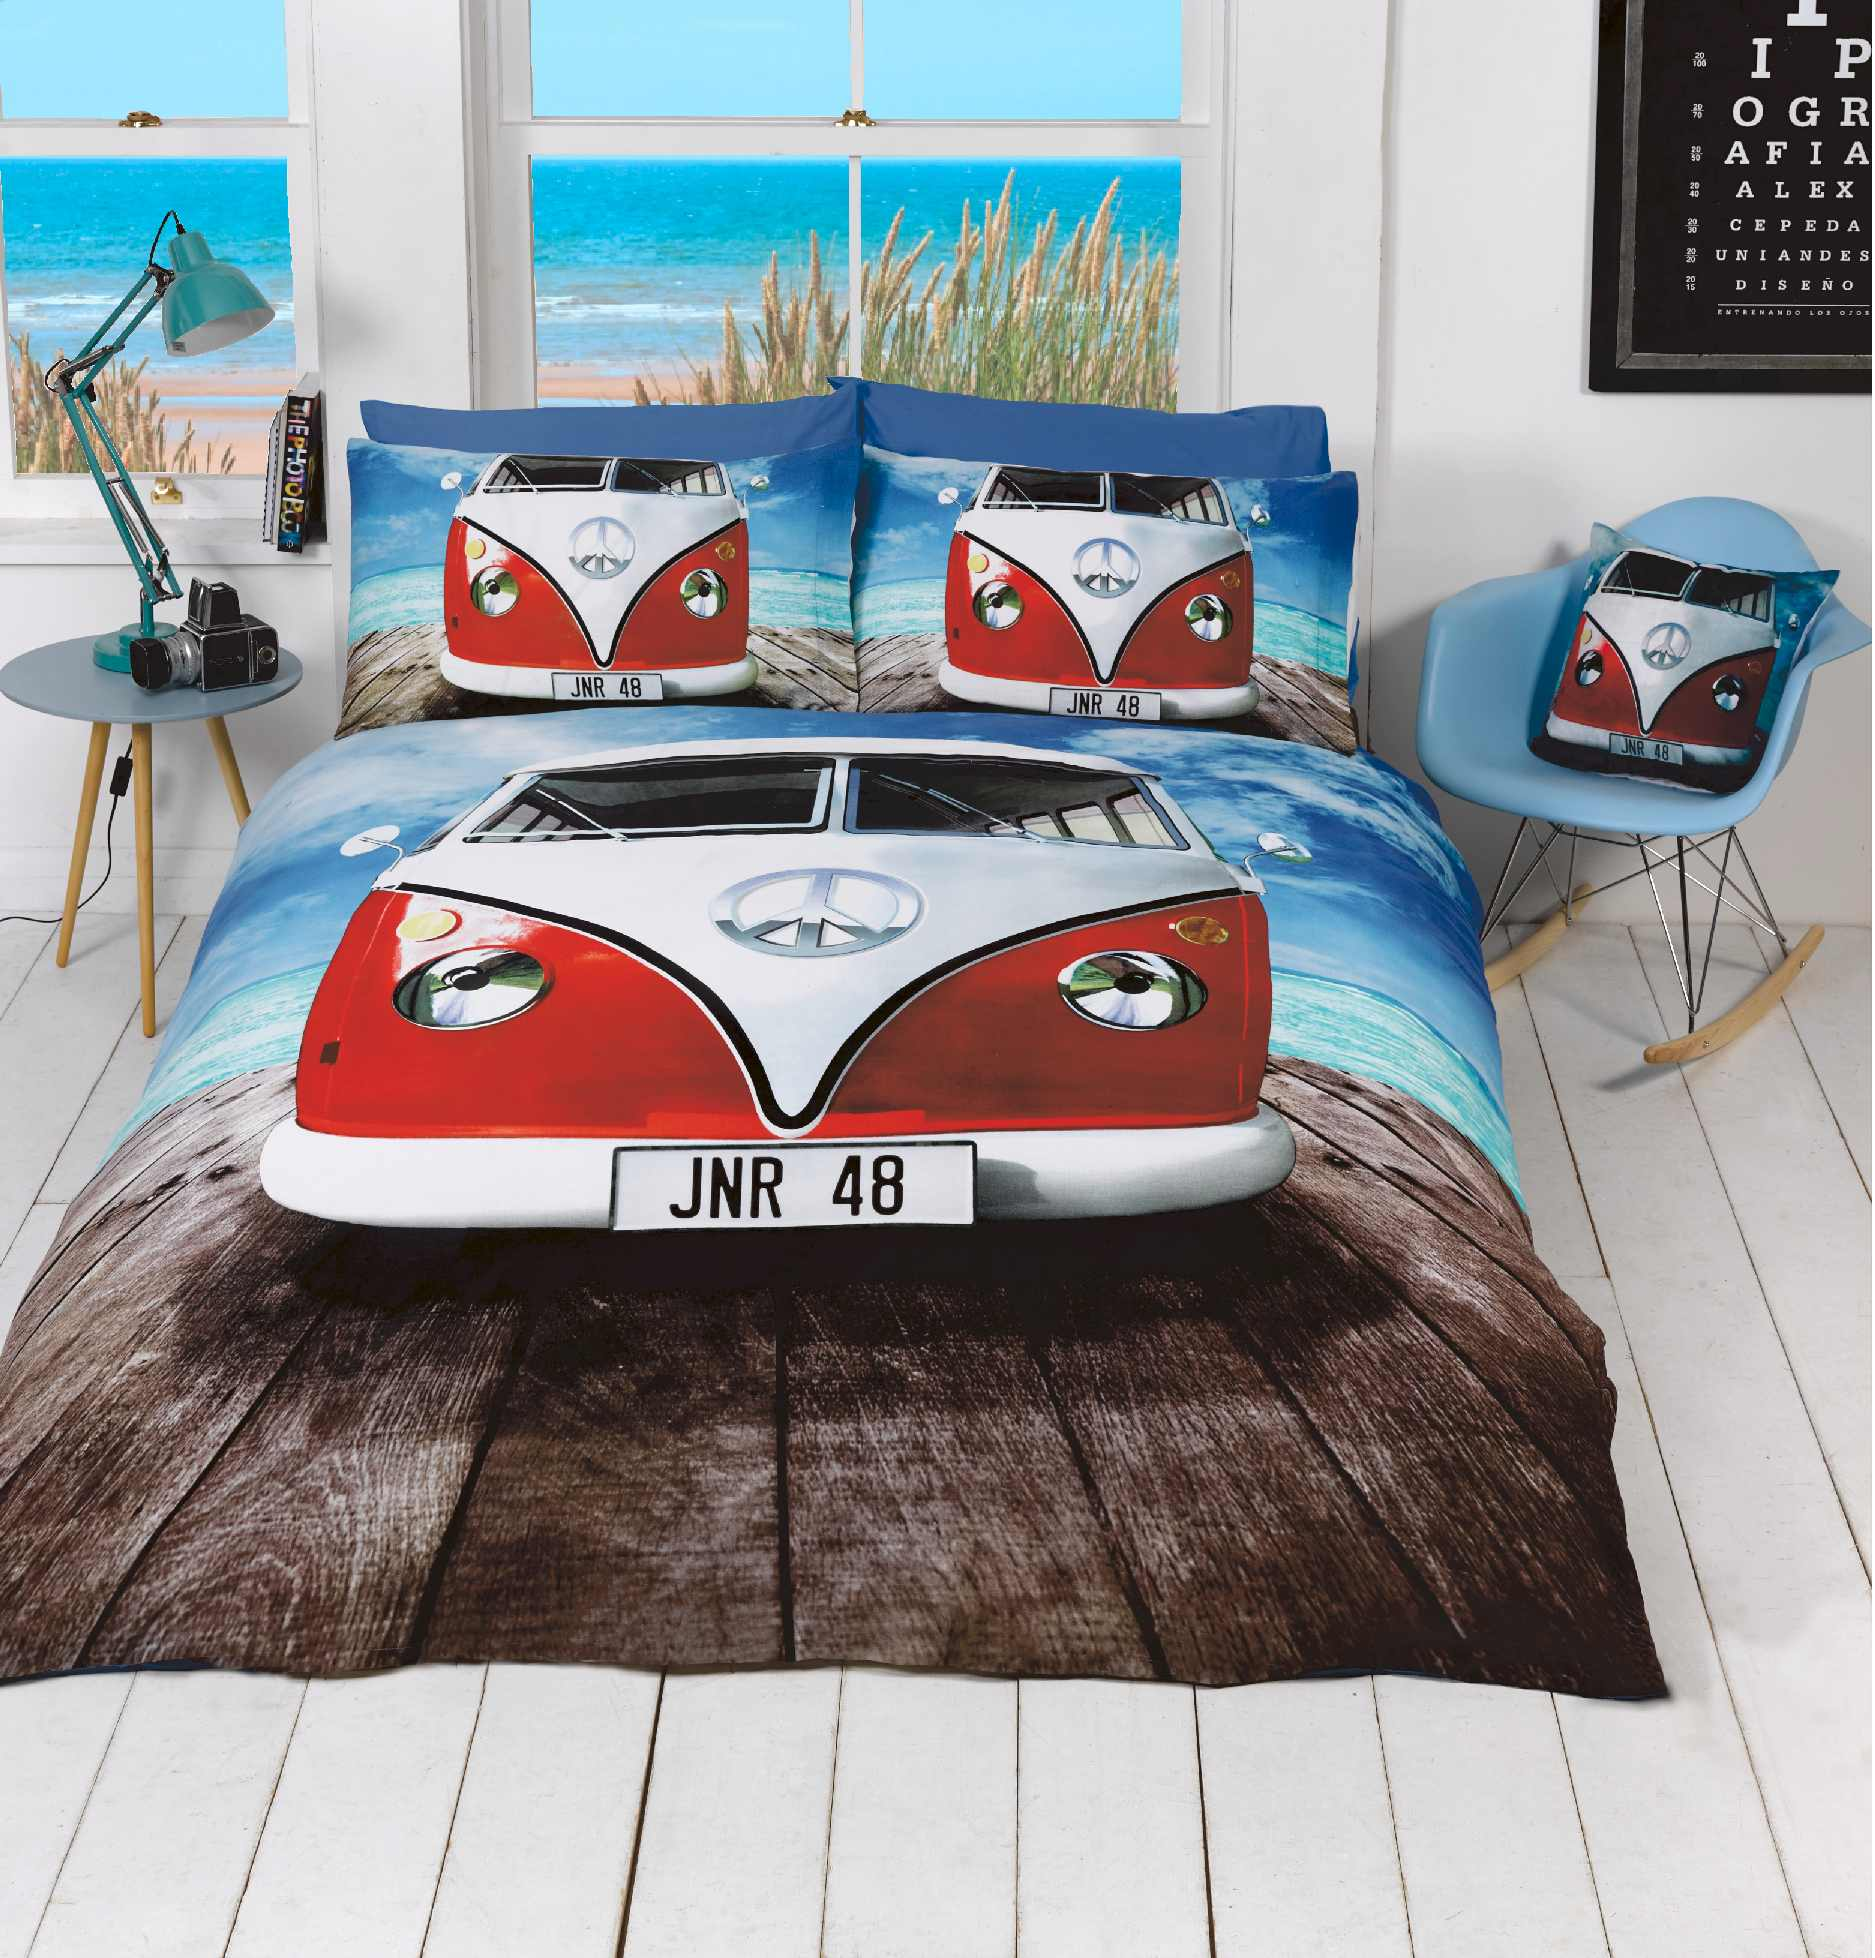 Boardwalk Camper Duvet Cover Set From Century Textiles